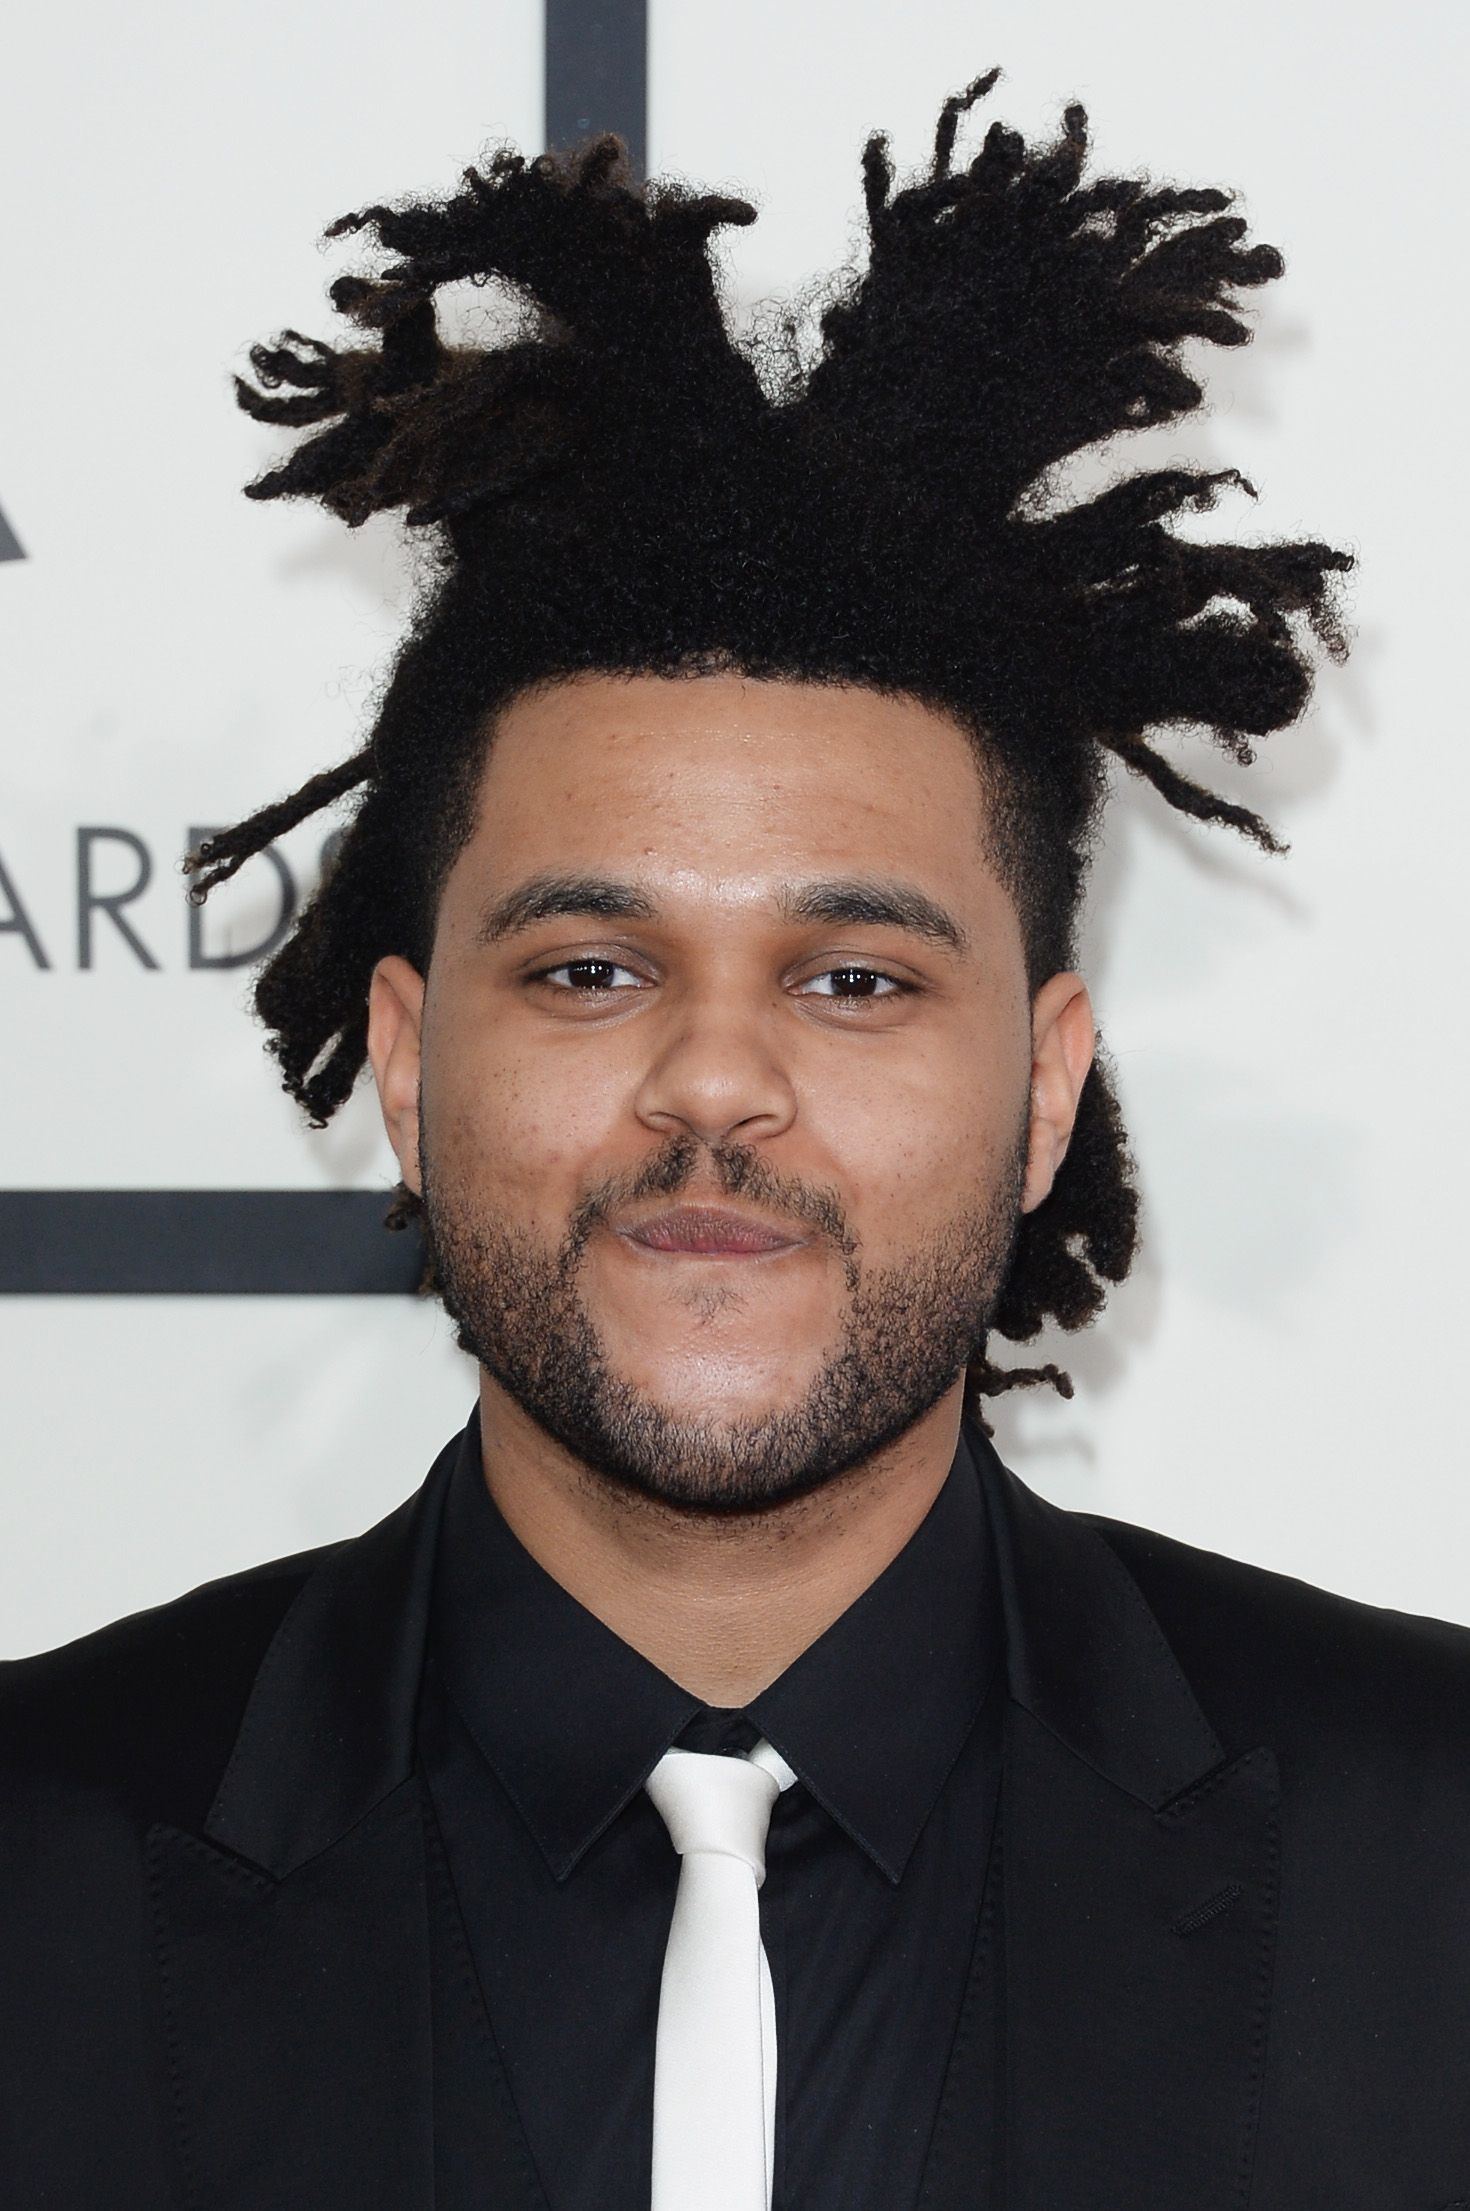 Abel Tesfaye of The Weeknd at the 56th GRAMMY Awards in January 2014 in Los Angeles | Source: Getty Images